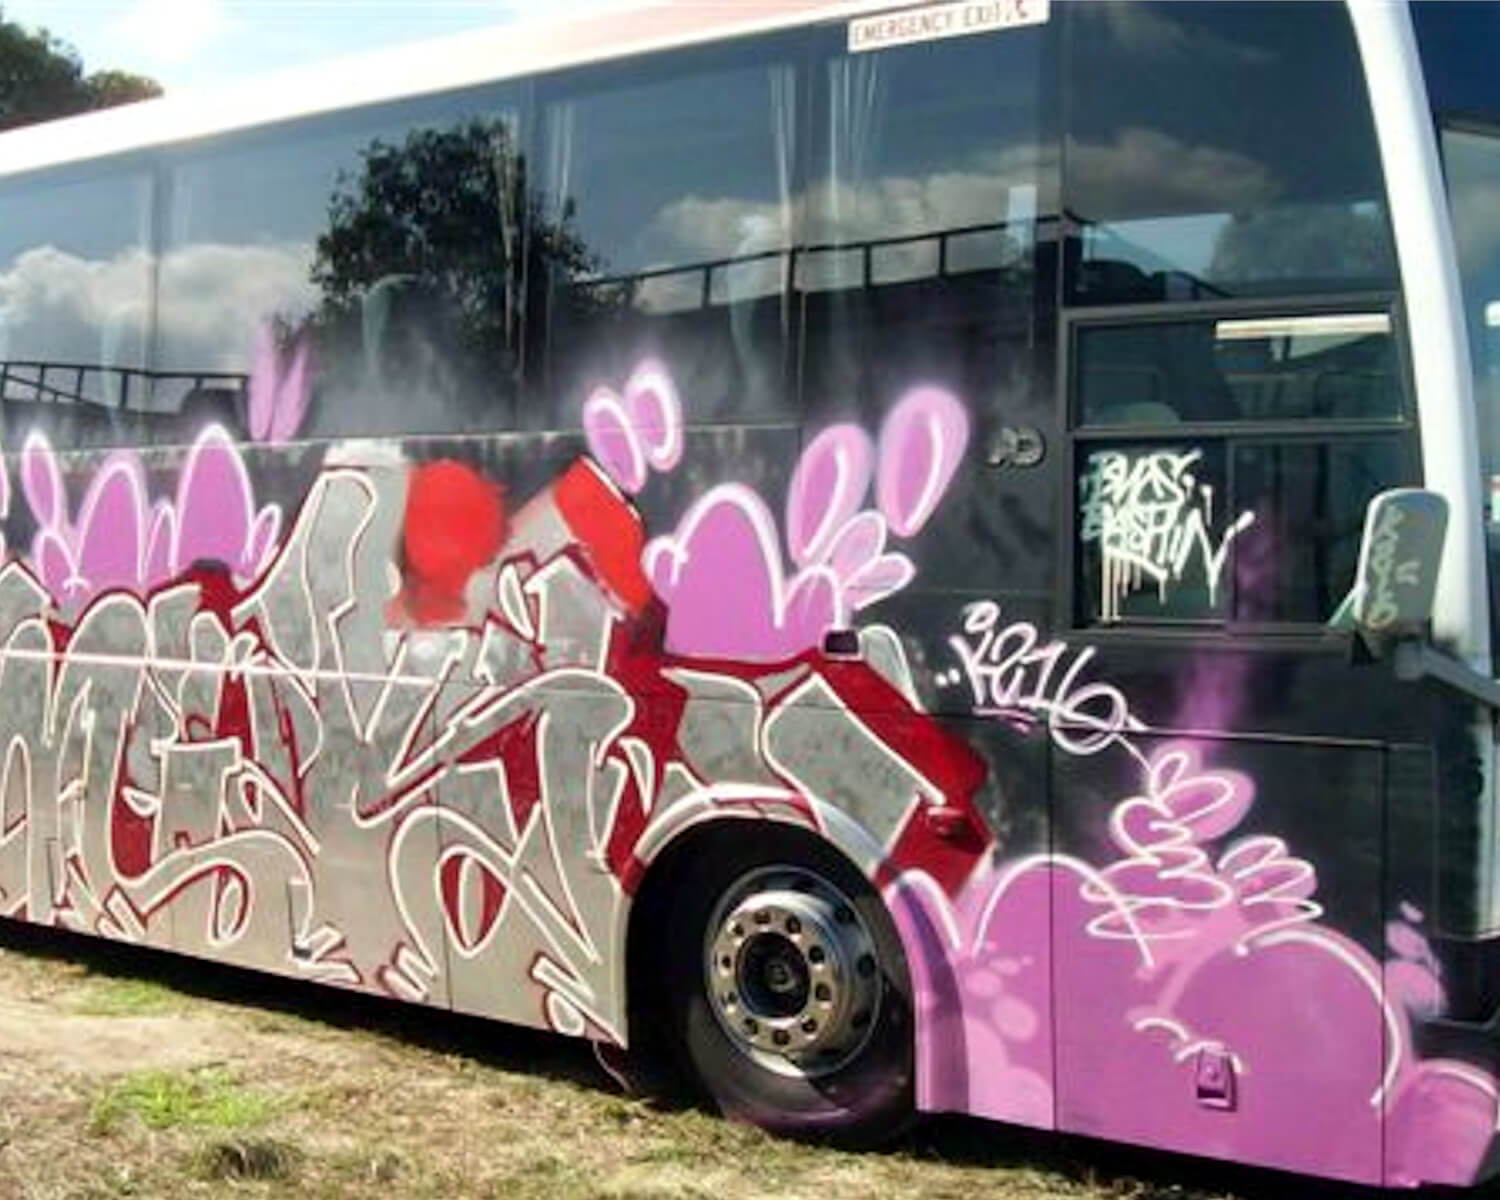 removing graffiti from a bus